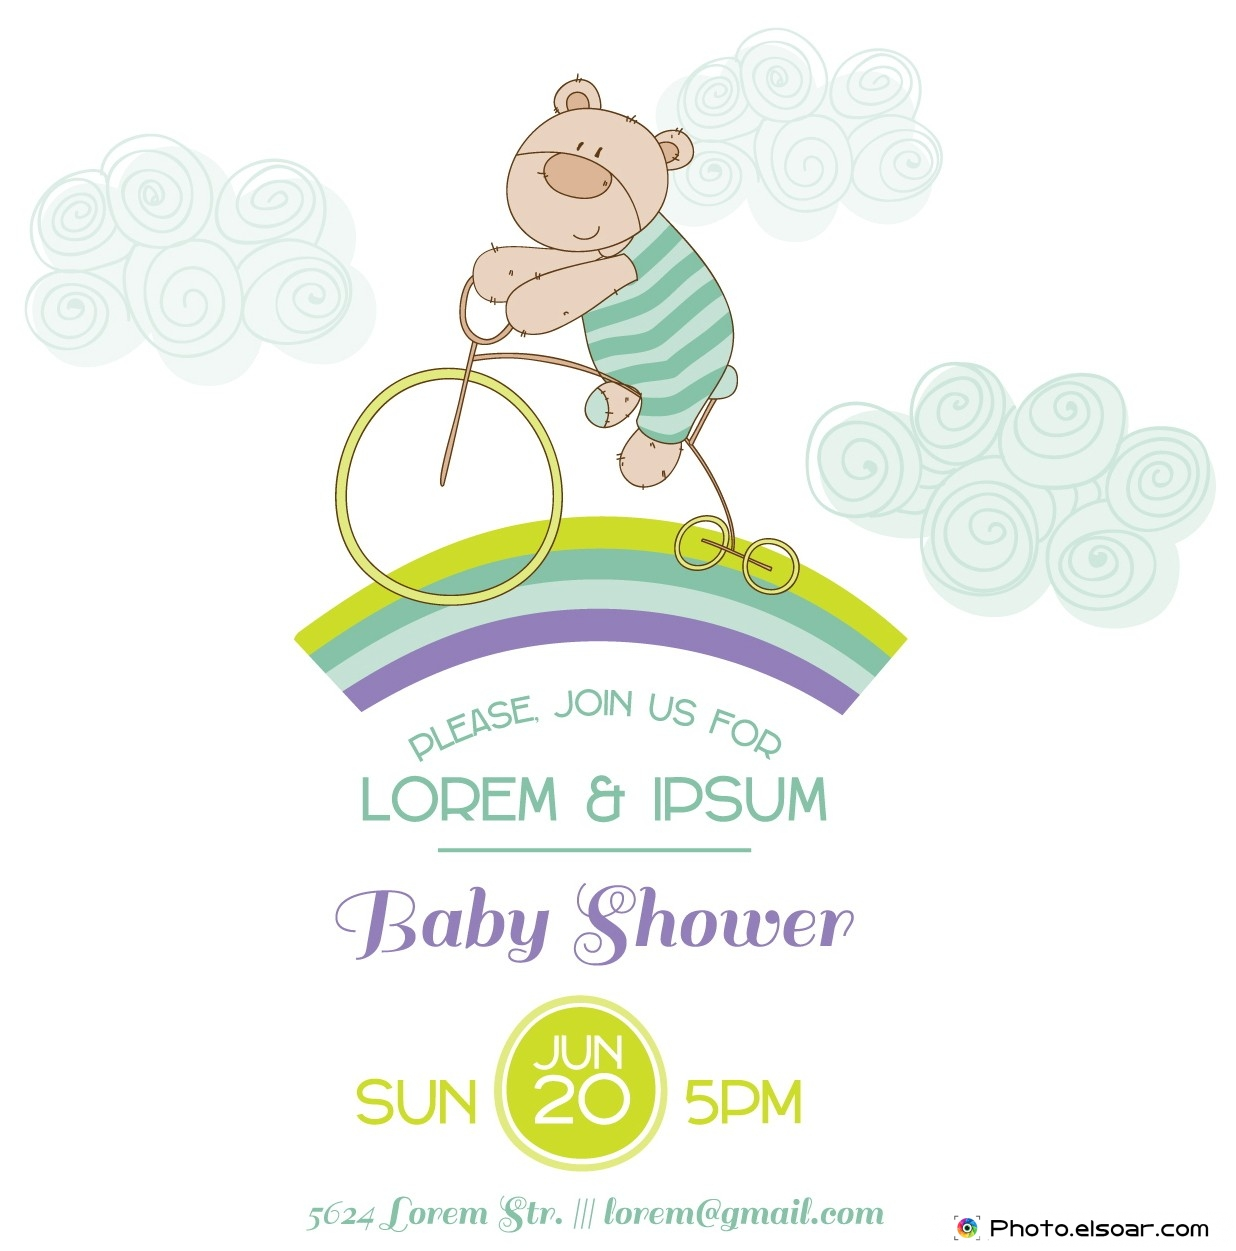 Please, Join us for Lorem , Ipsum. Baby Shower